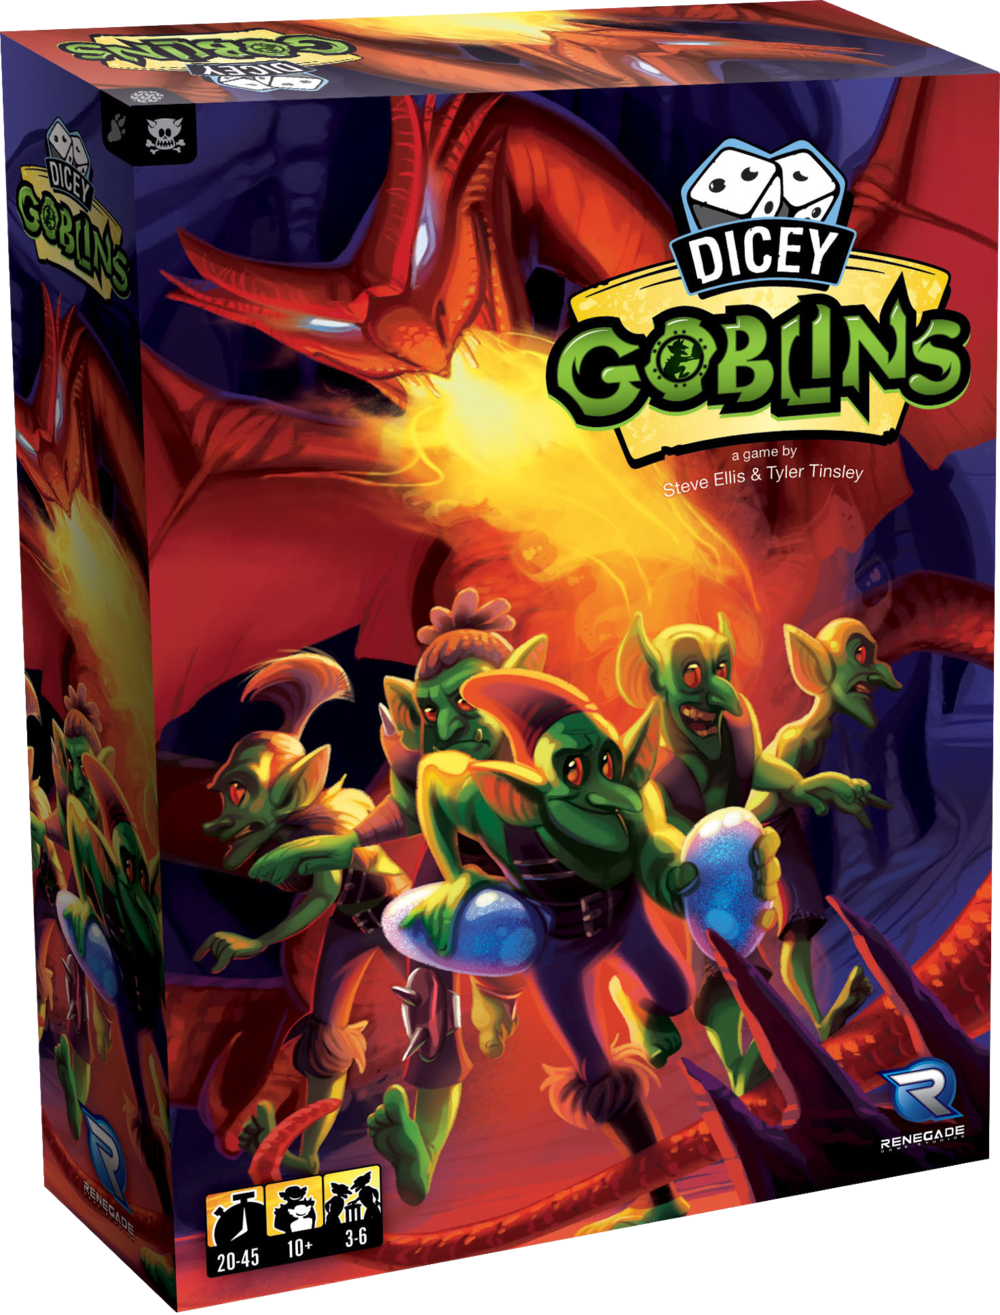 Image result for dicey goblins